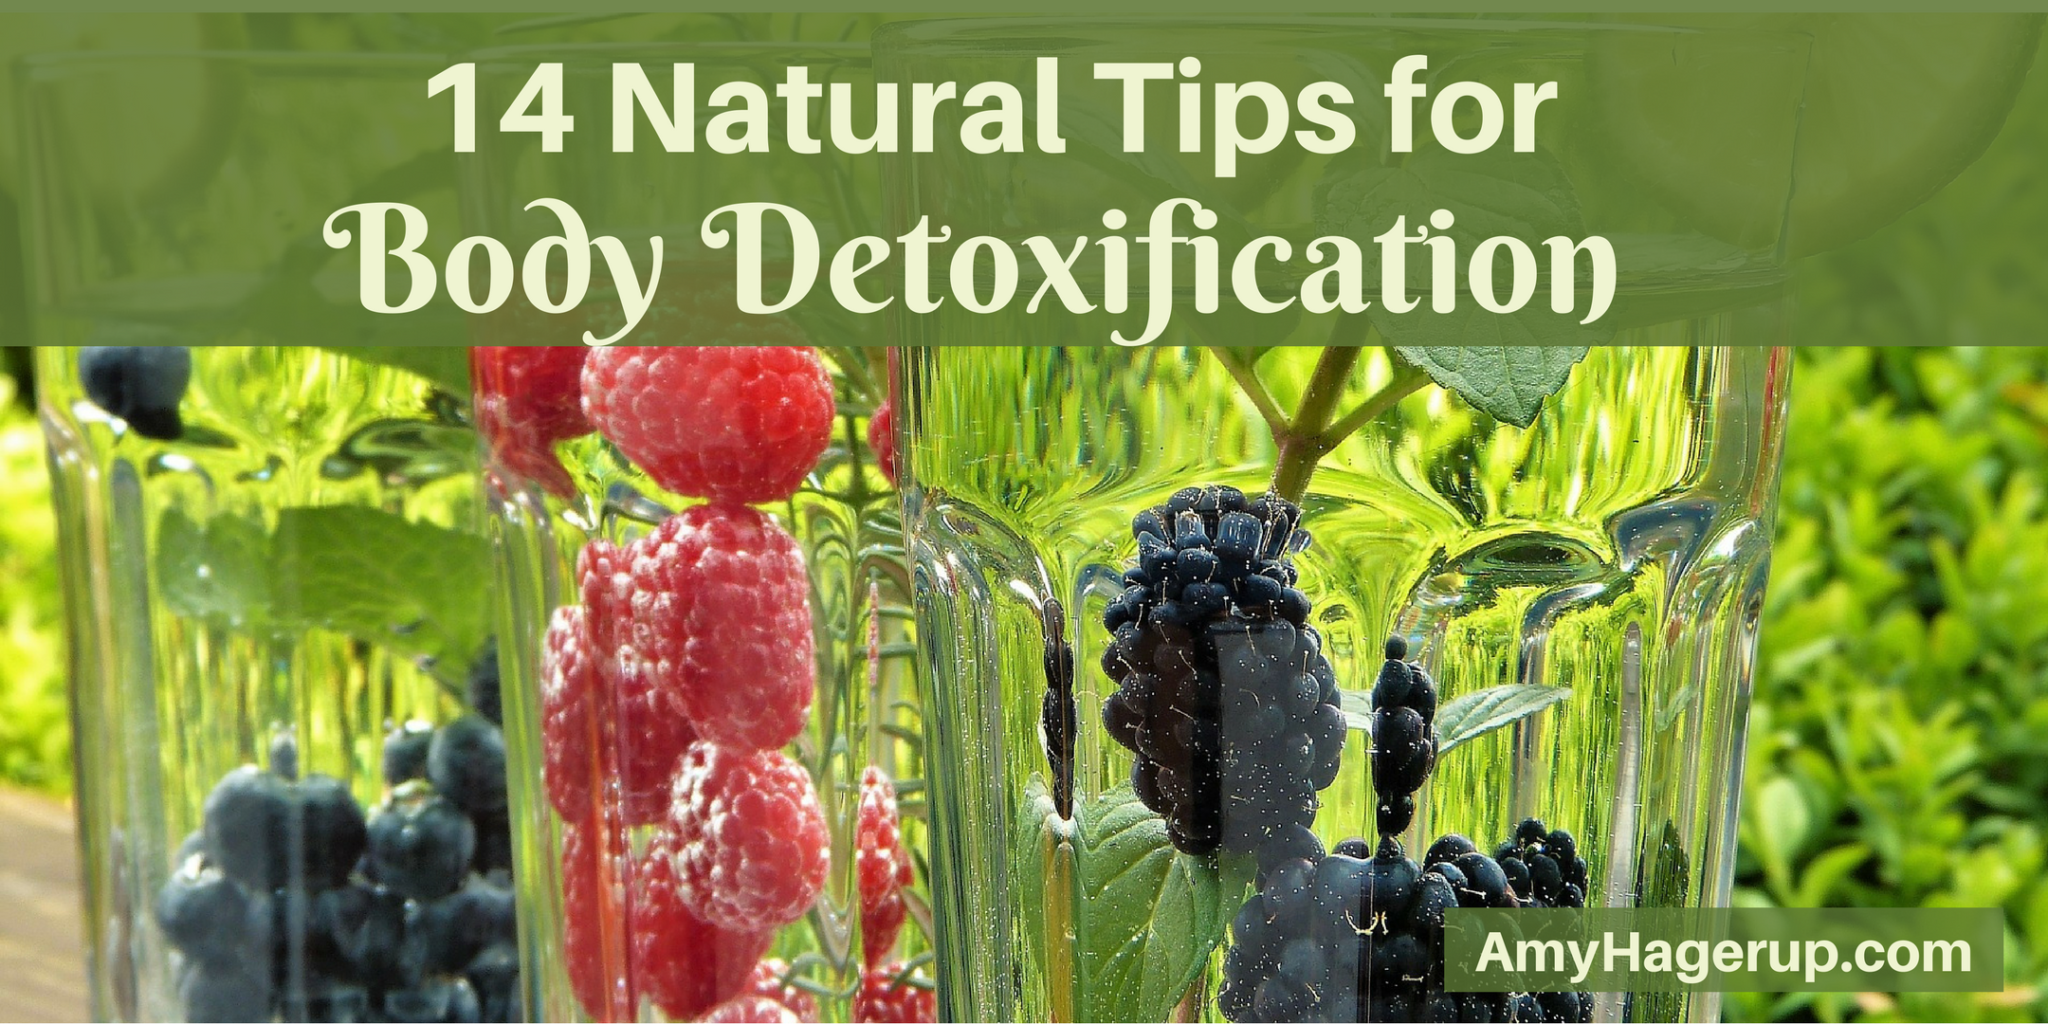 Check out 14 tips for effective body detoxification.